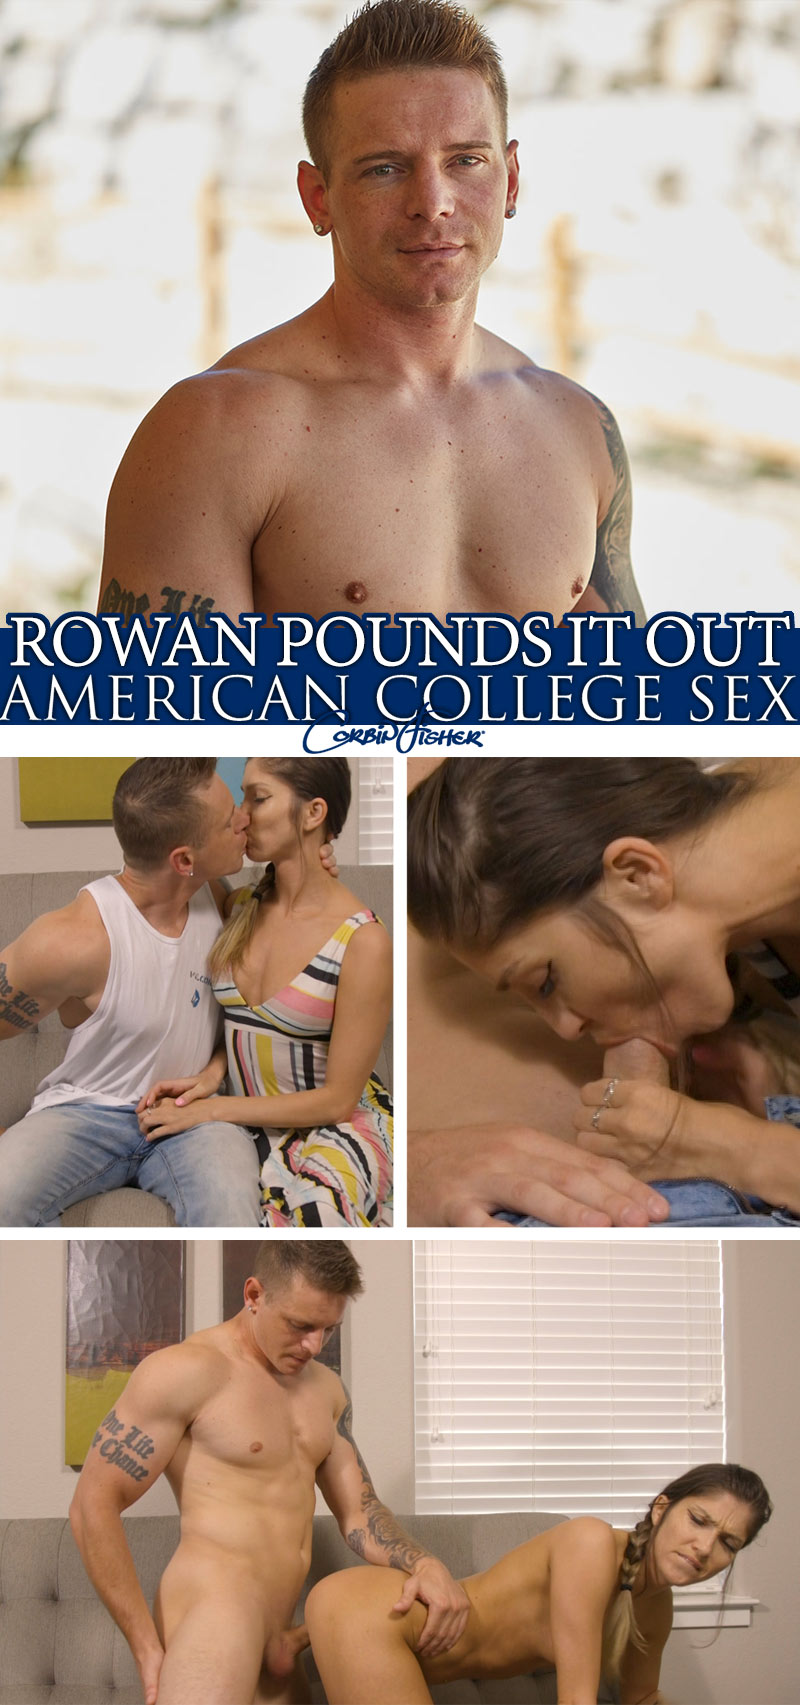 Rowan Pounds It Out at AmateurCollegeSex